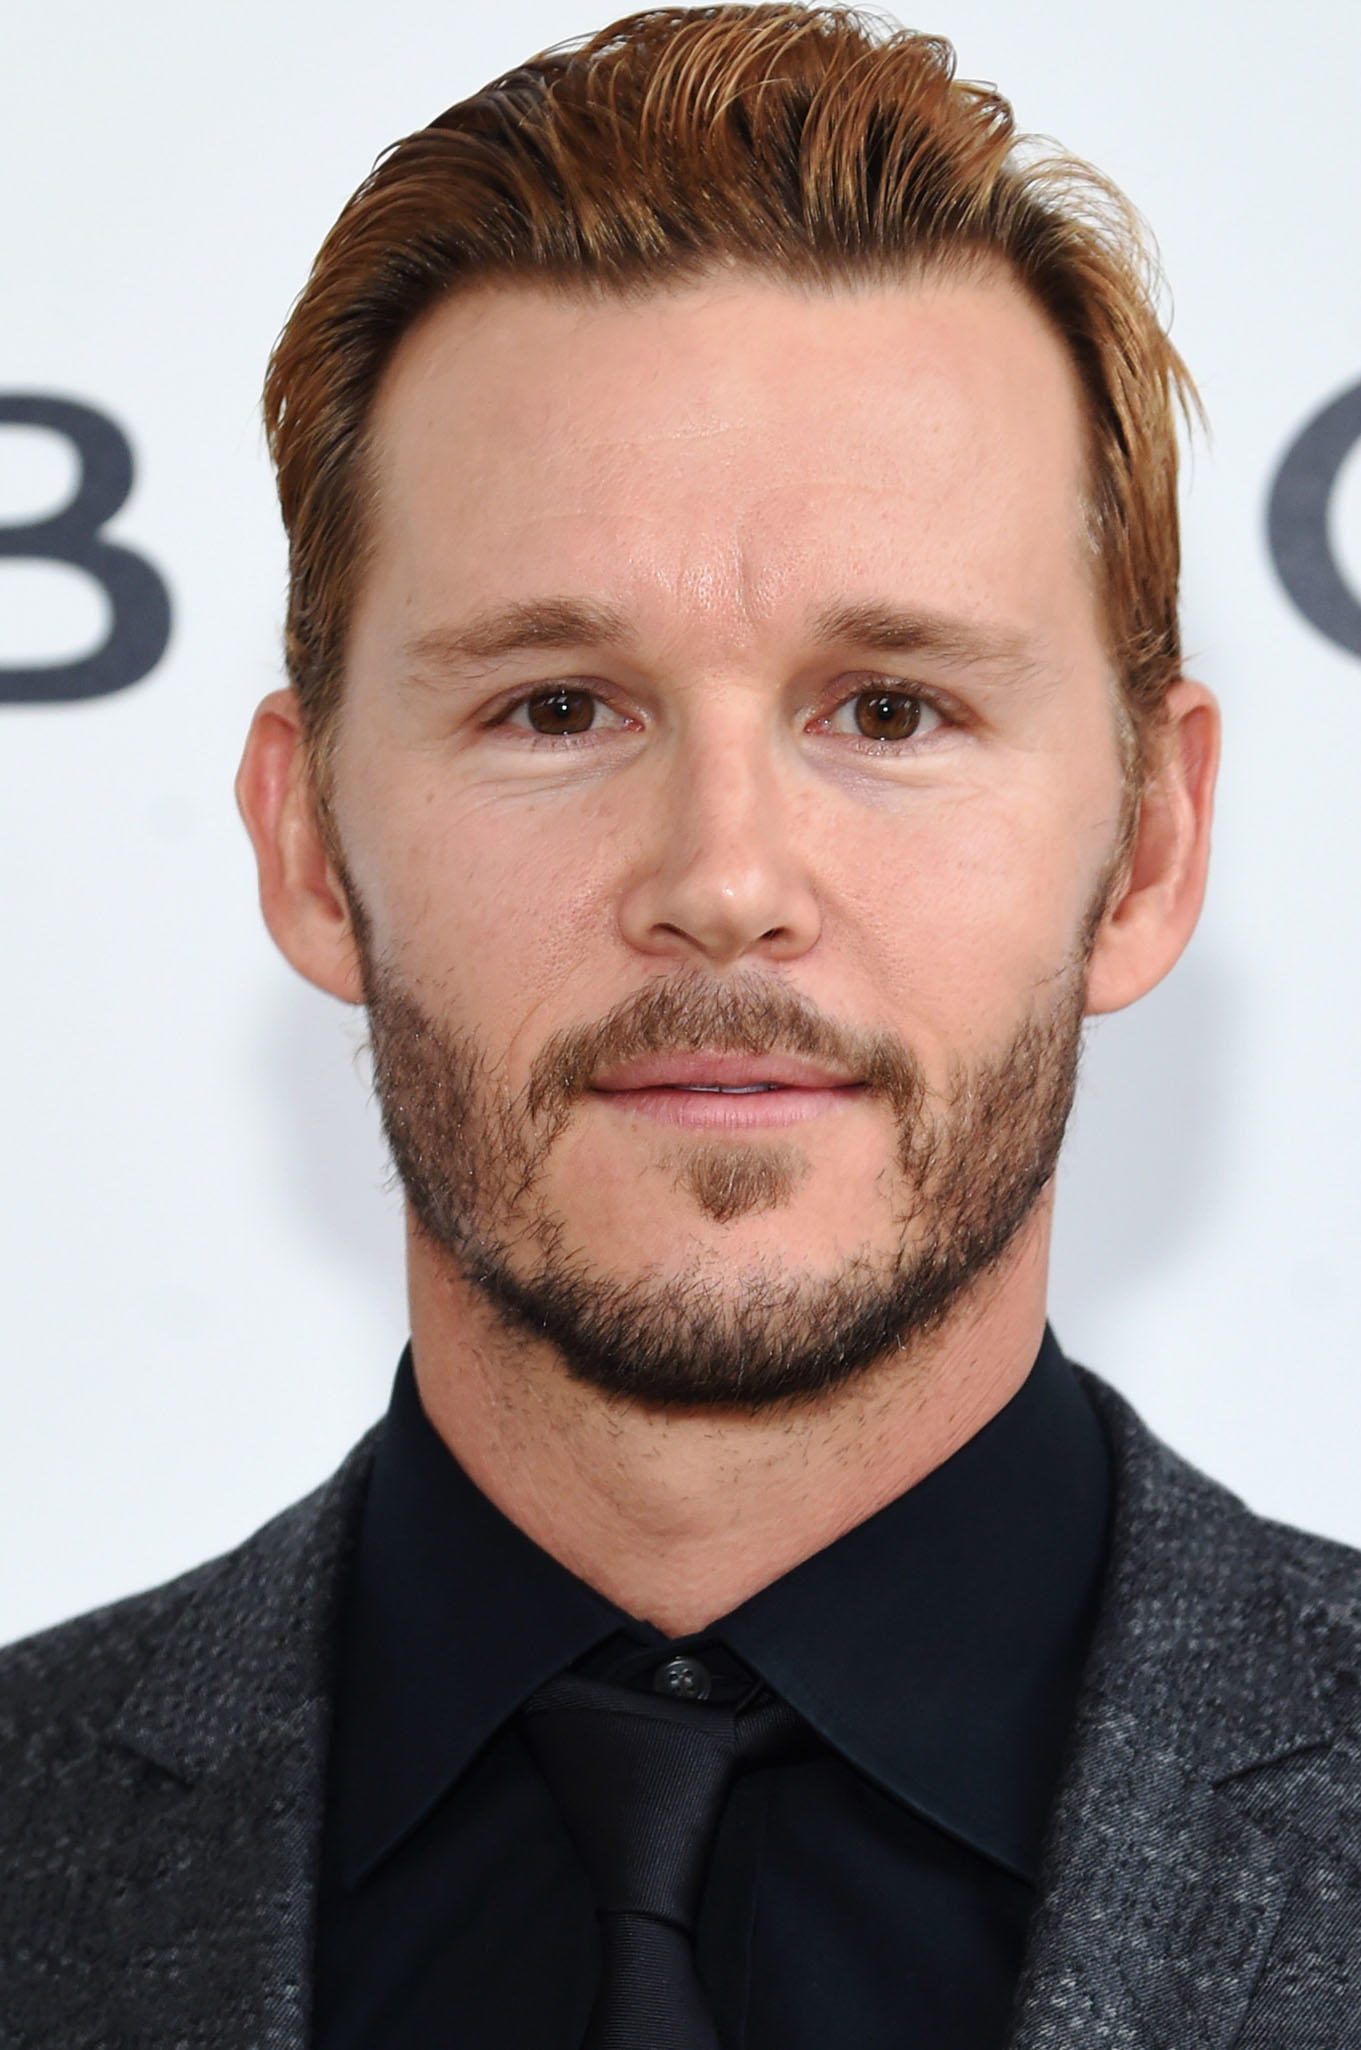 Ryan Kwanten at the 25th Annual Elton John AIDS Foundation's Academy Awards Viewing Party in West Hollywood, California.